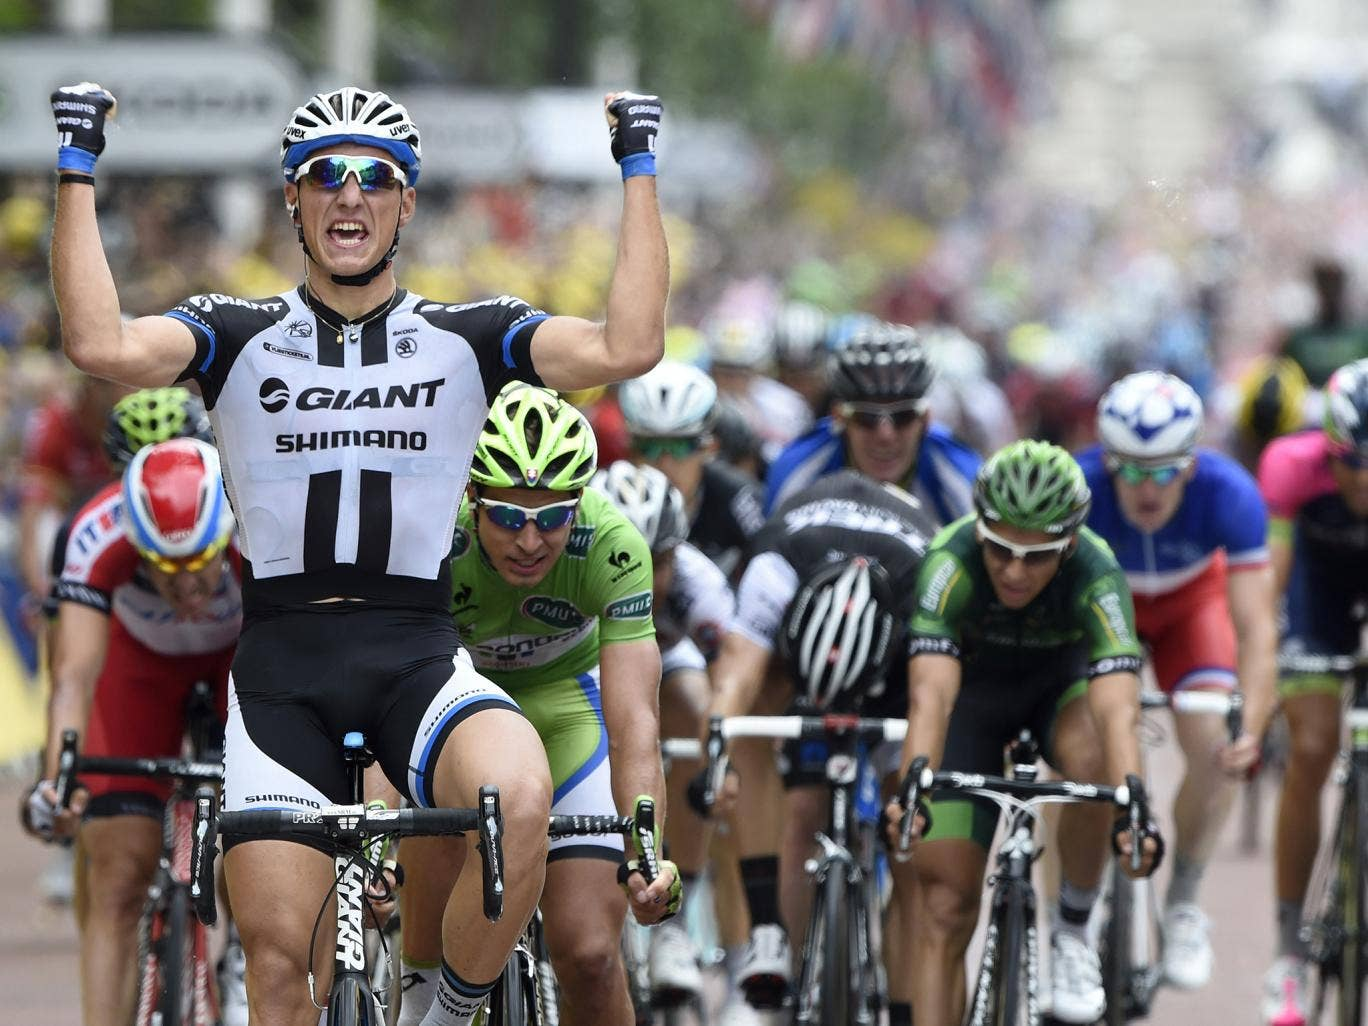 Germany's Marcel Kittel celebrates as he crosses the finish line at the end of the 155 km third stage of the 101st edition of the Tour de France